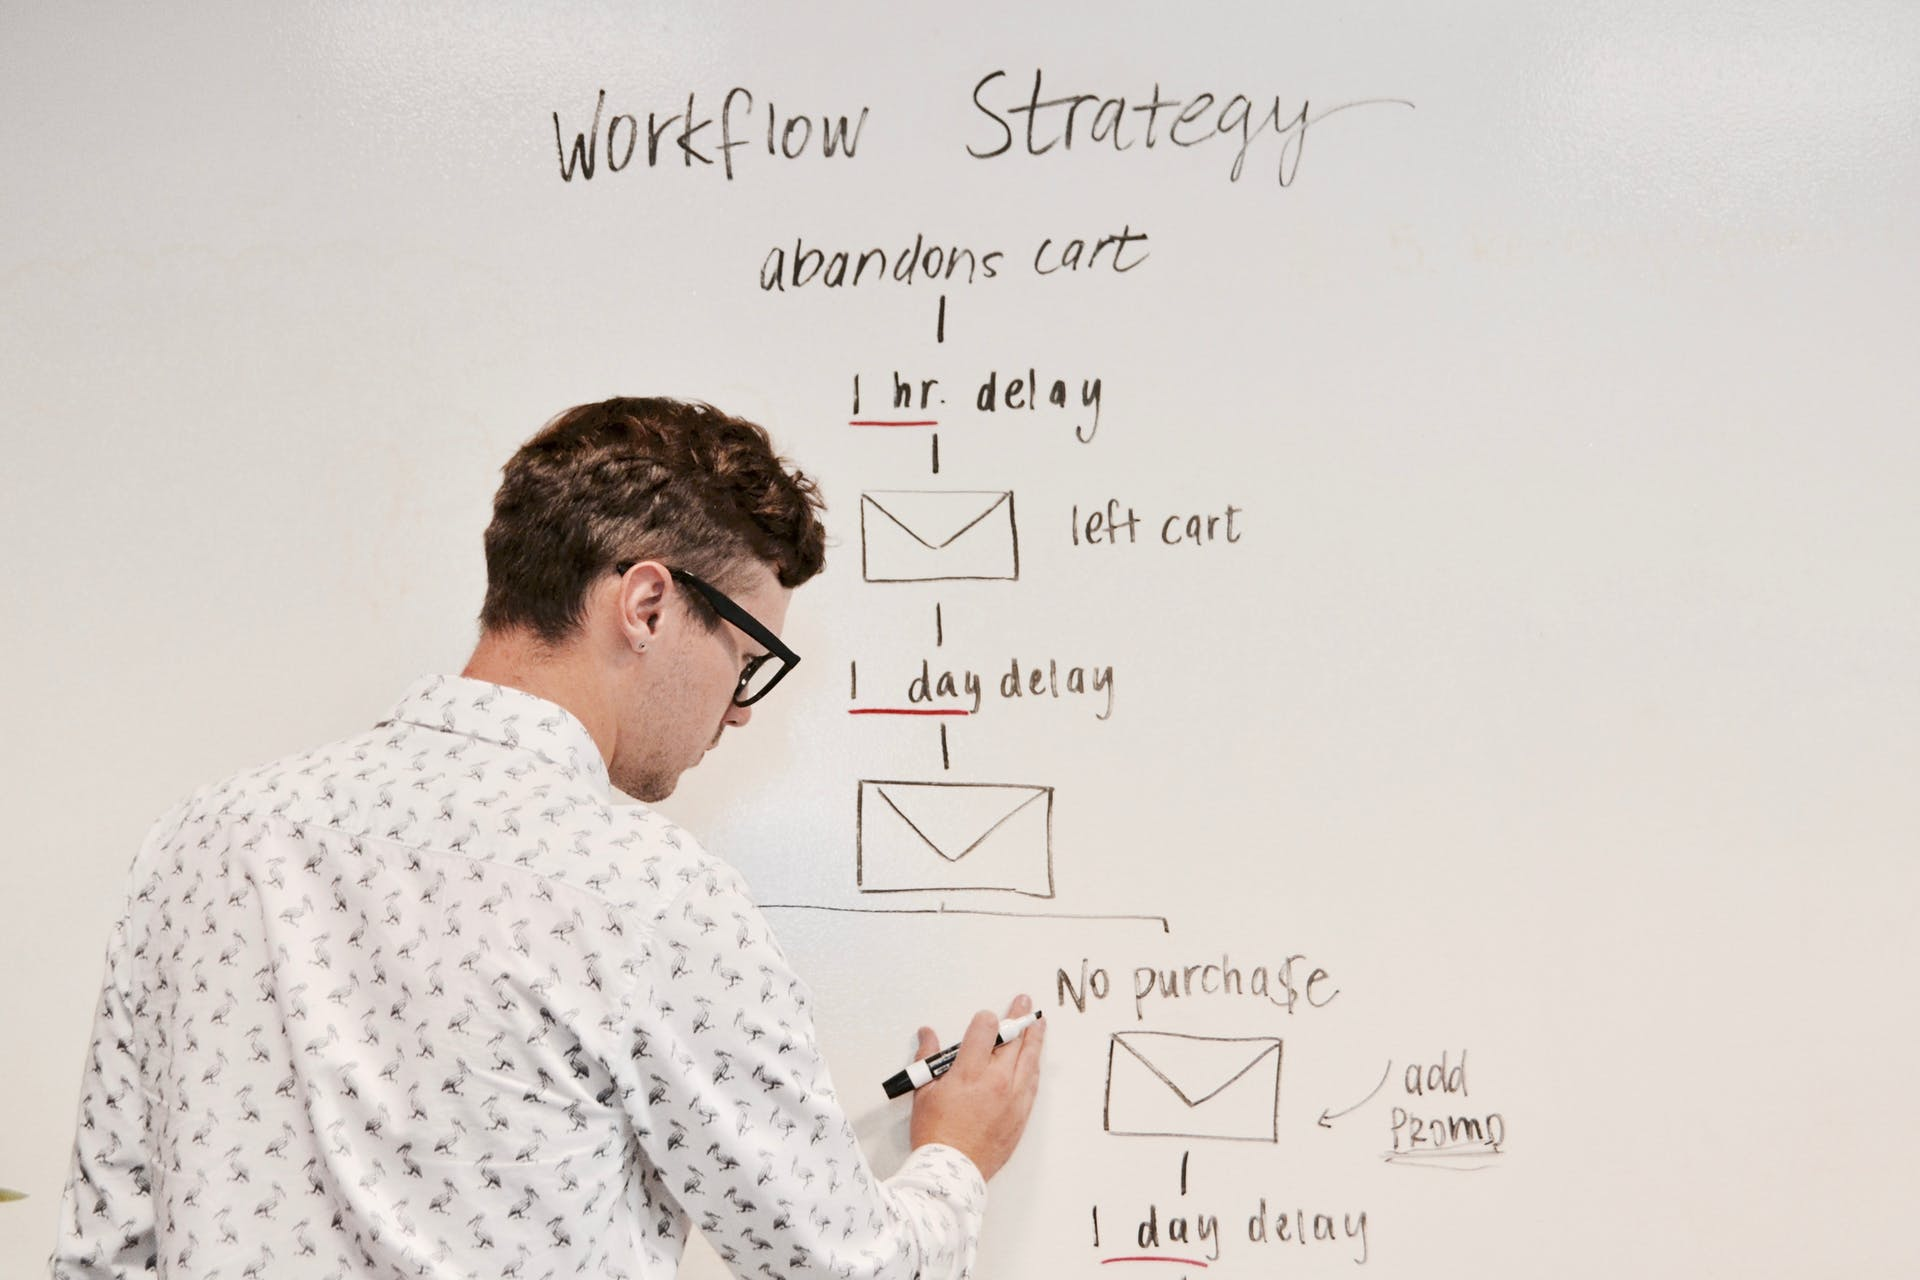 man writing a workflow strategy on a white board